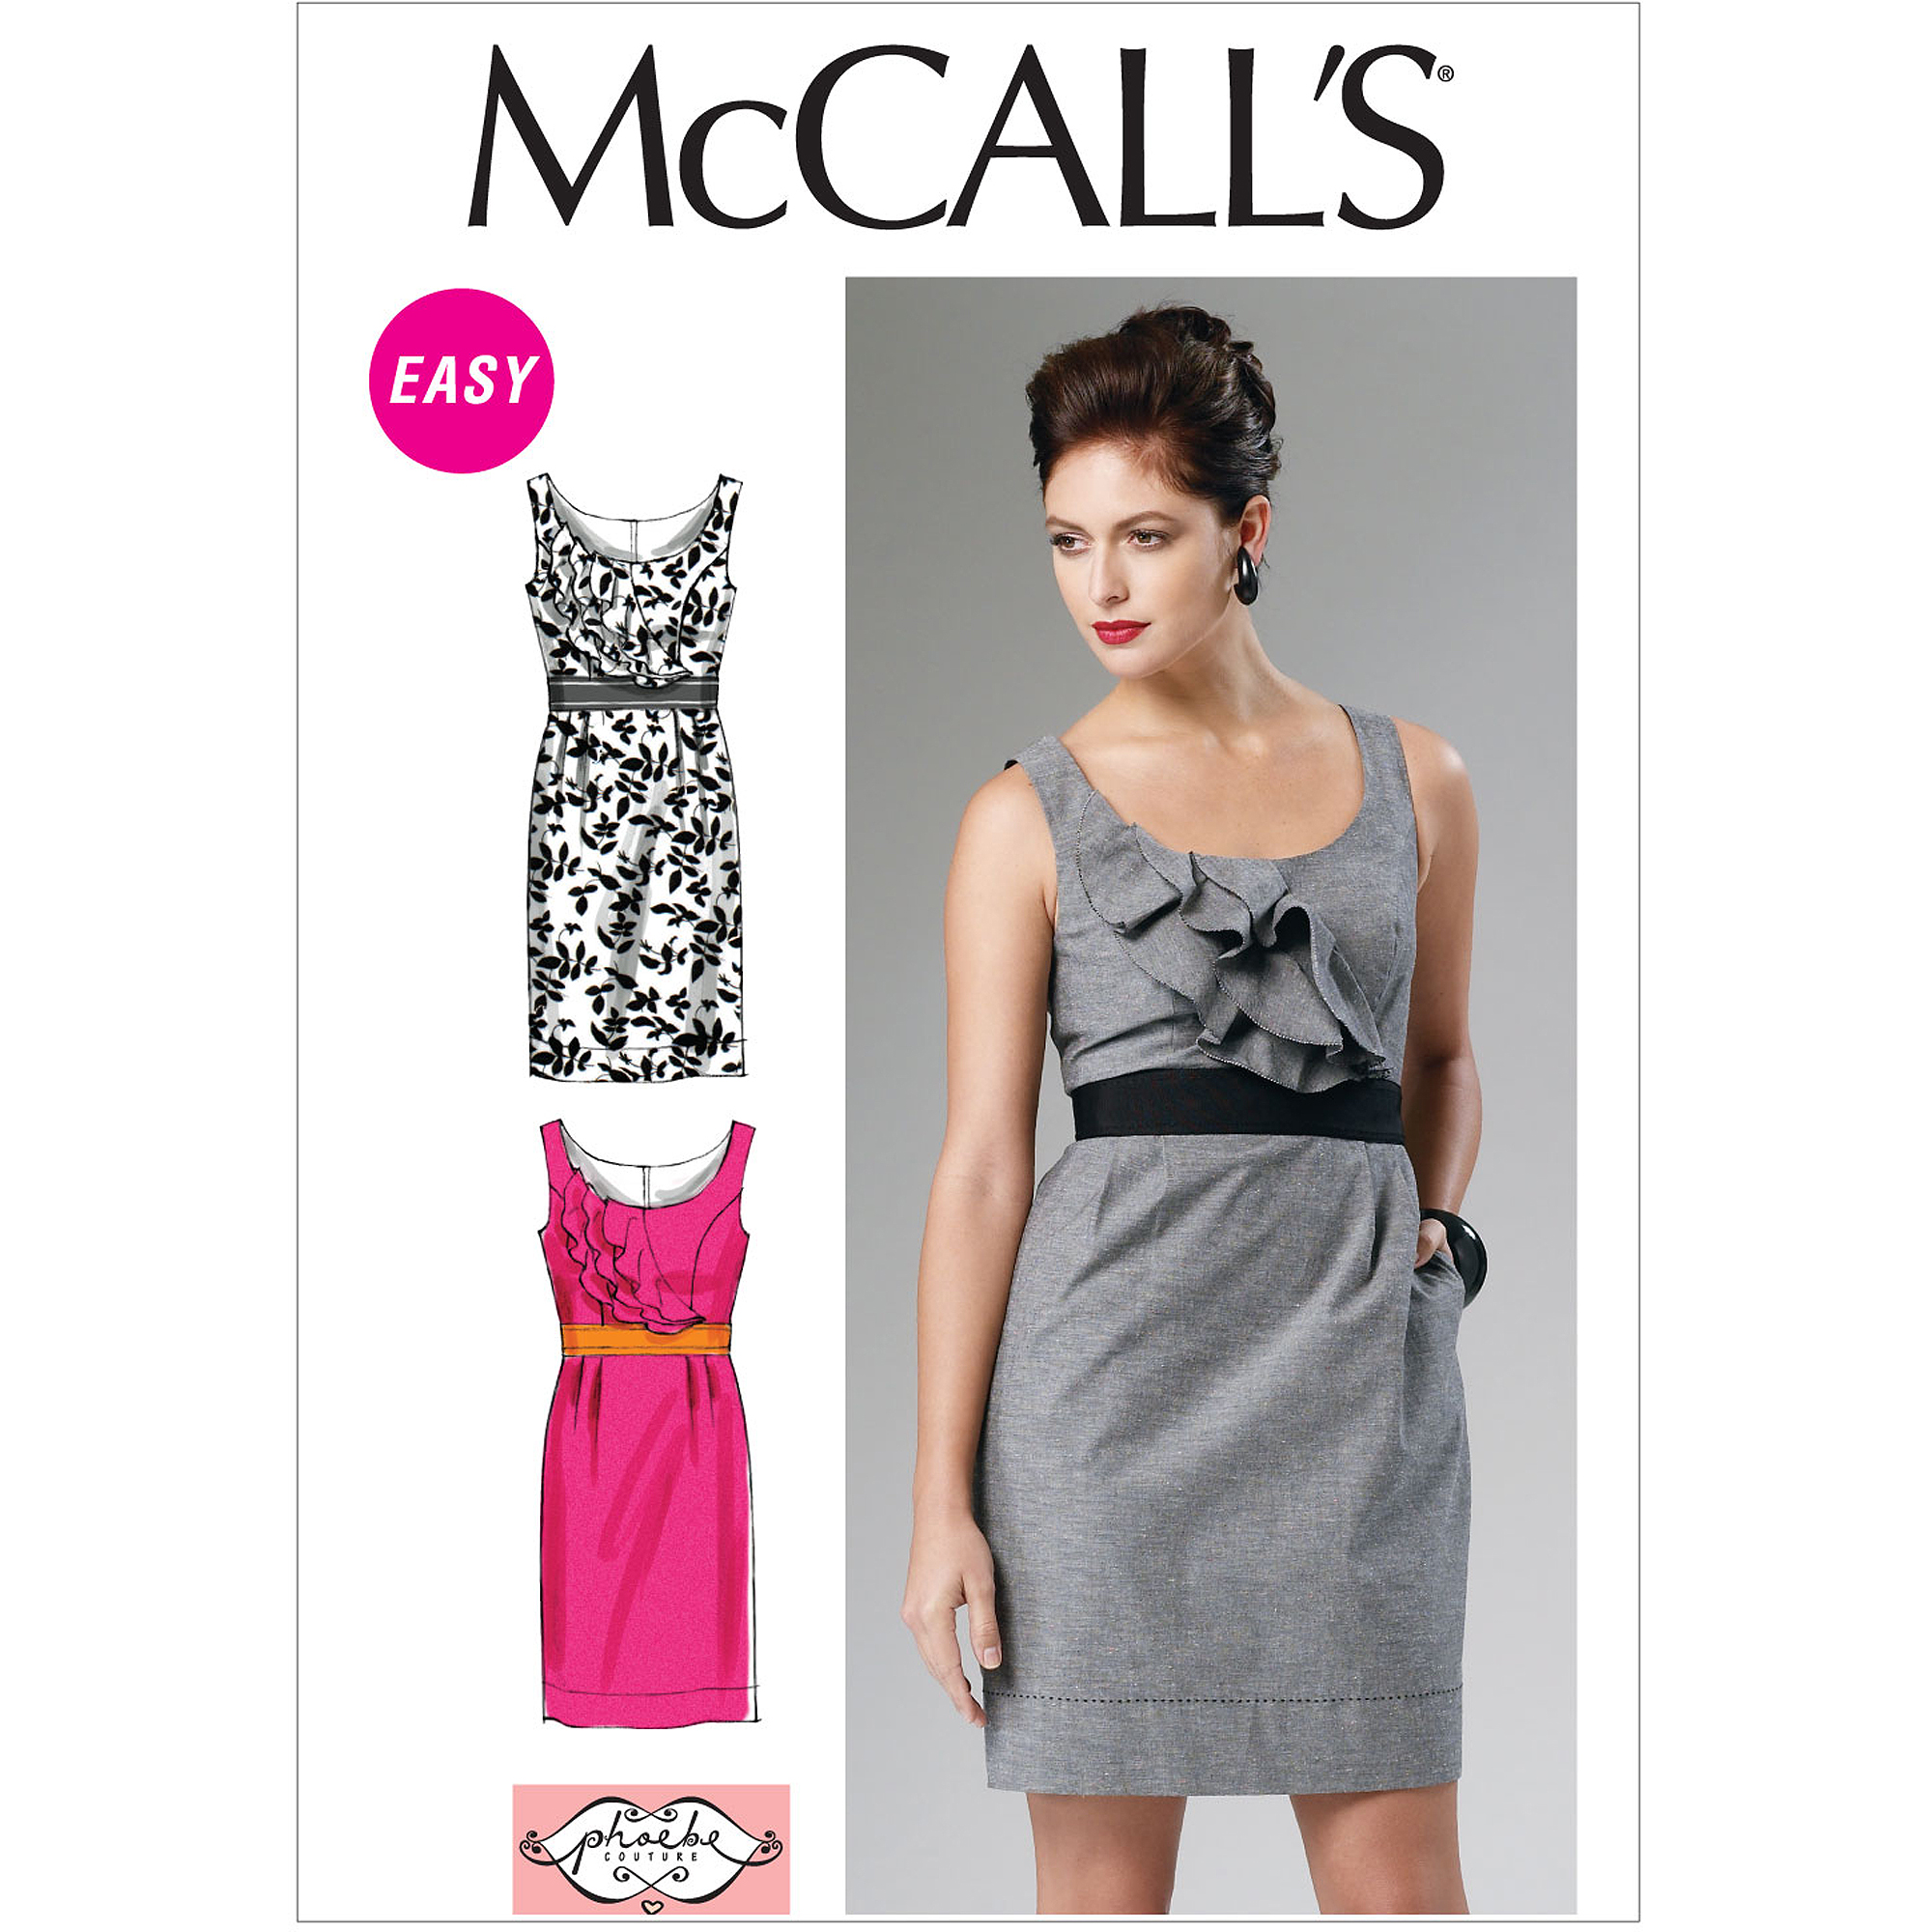 McCall's Pattern Misses' Unlined Jacket, Top, Dress, Skirt and Pants, E5 (14, 16, 18, 20, 22)